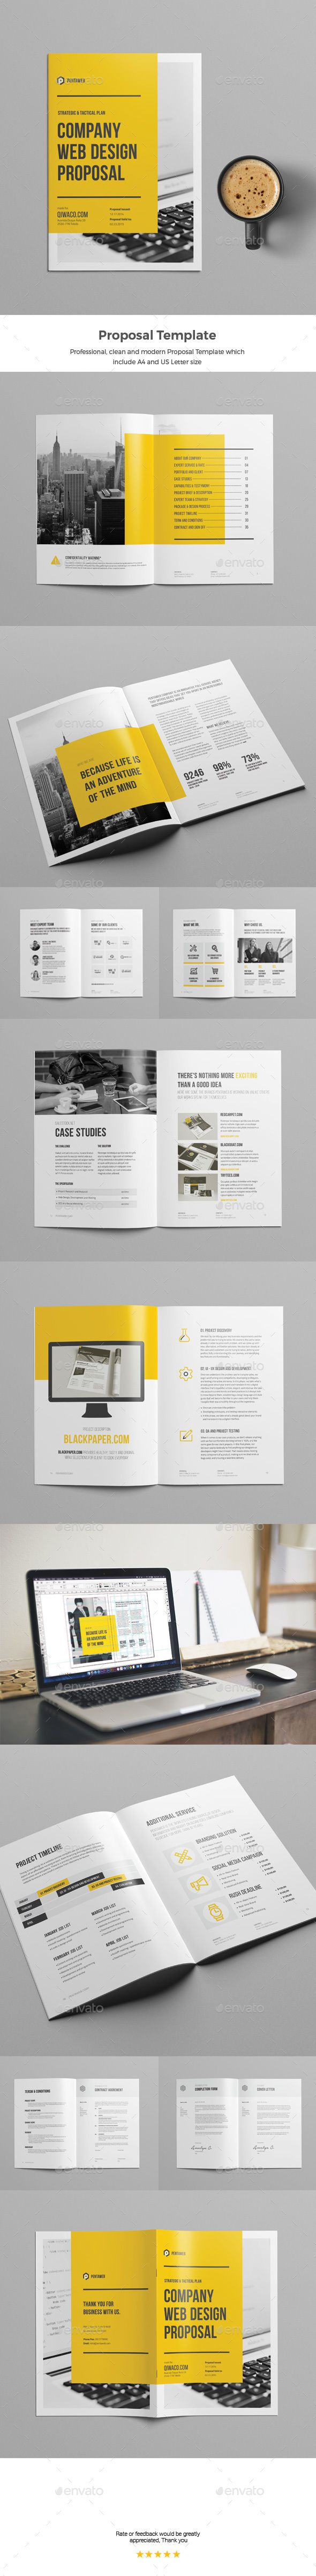 Marketing Project Proposal Template] Project Proposal By World Print ...